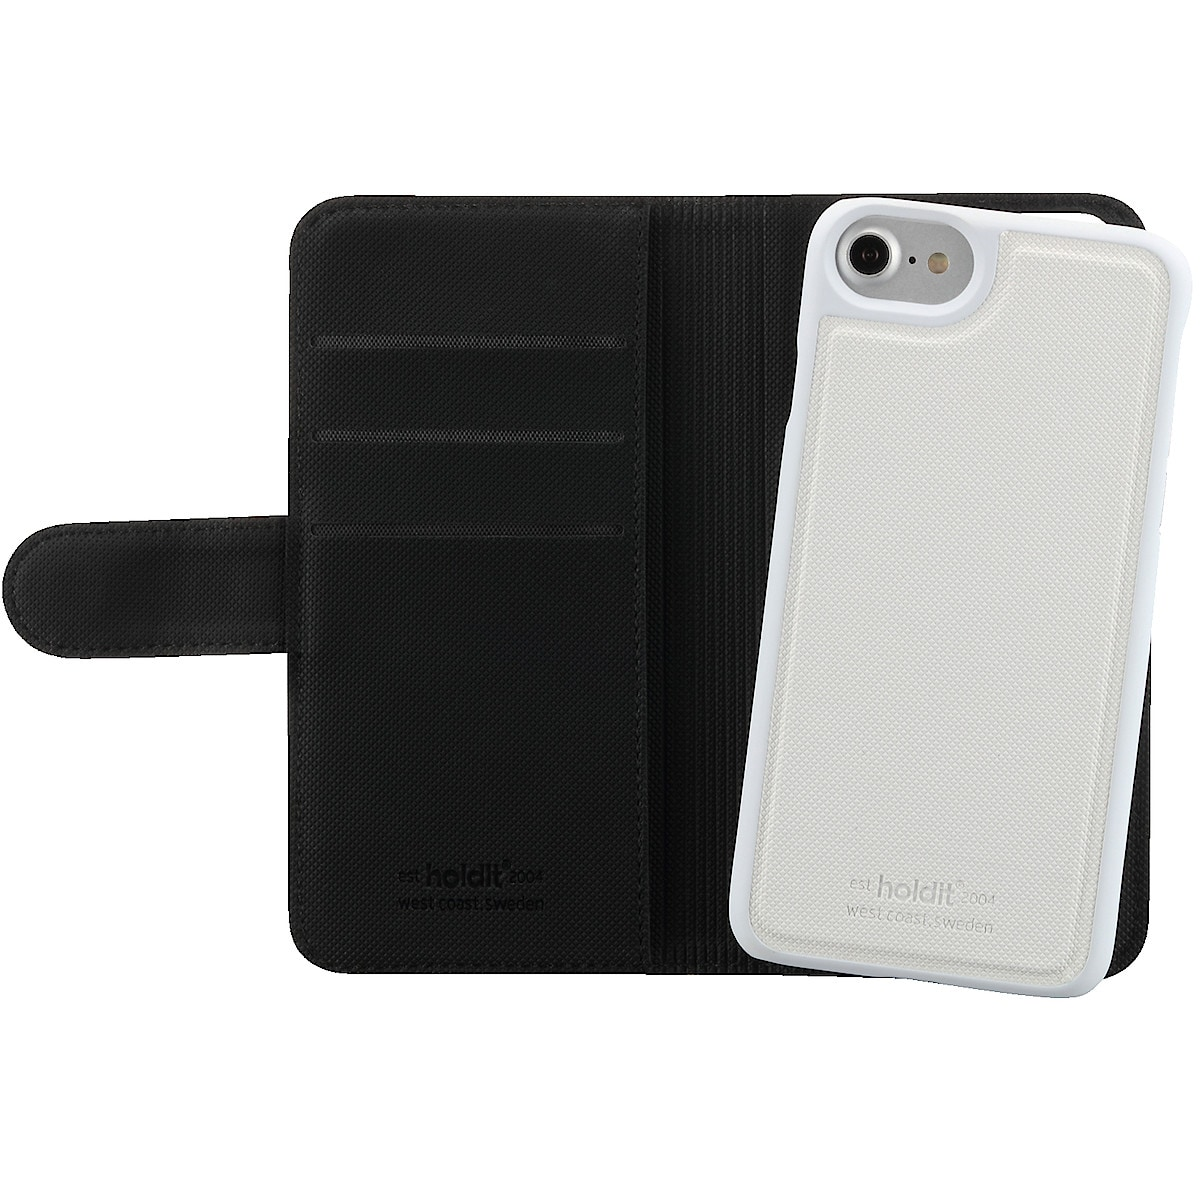 Holdit Wallet Case for iPhone 6/6s/7/8